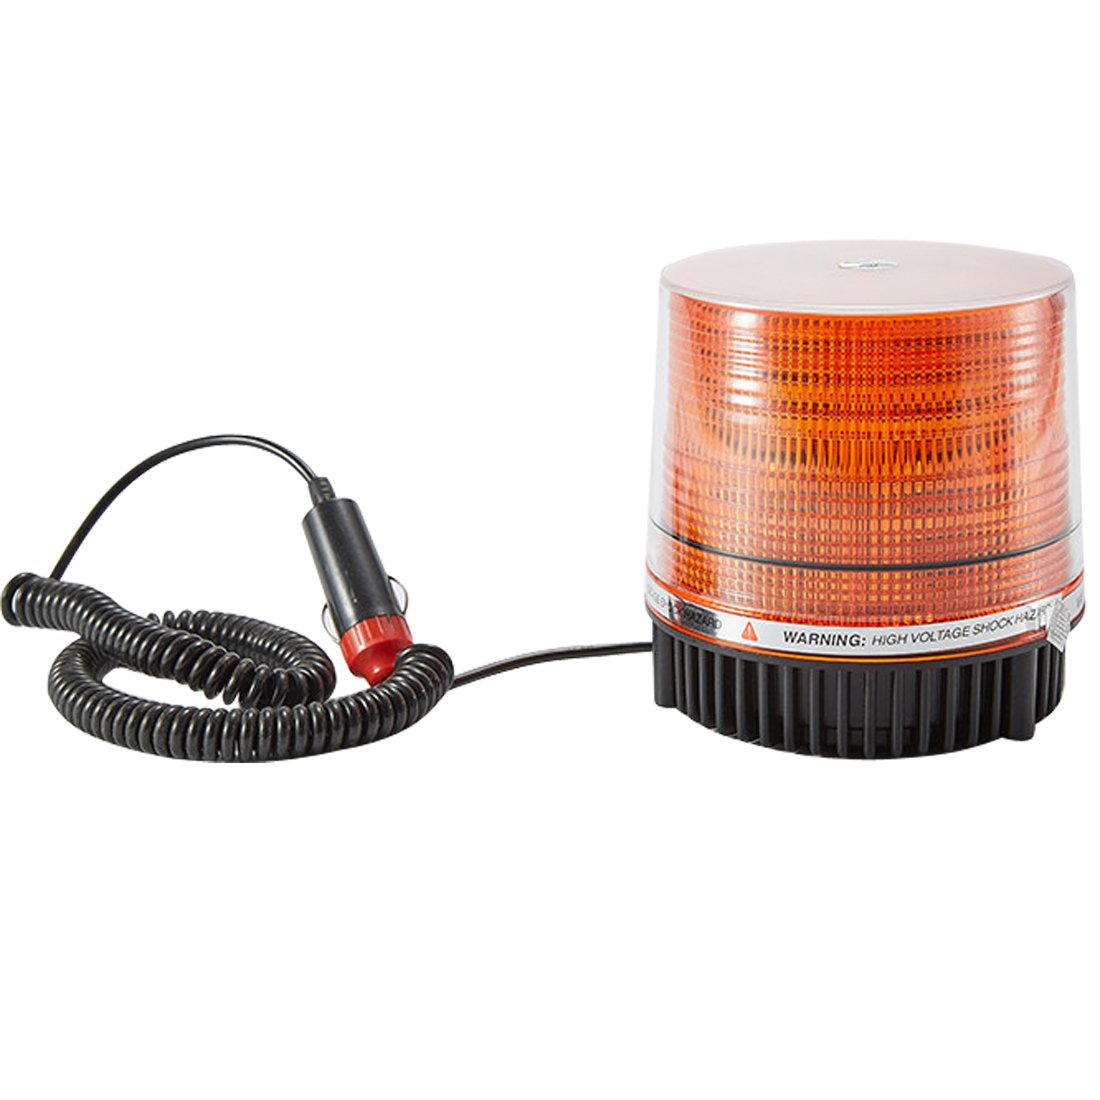 Penfly 8w LED Warning Strobe Light Car Truck Boat Forklift Projector Magnet Mount Security Signal Night Lamp Yellow/Amber Color DC12v